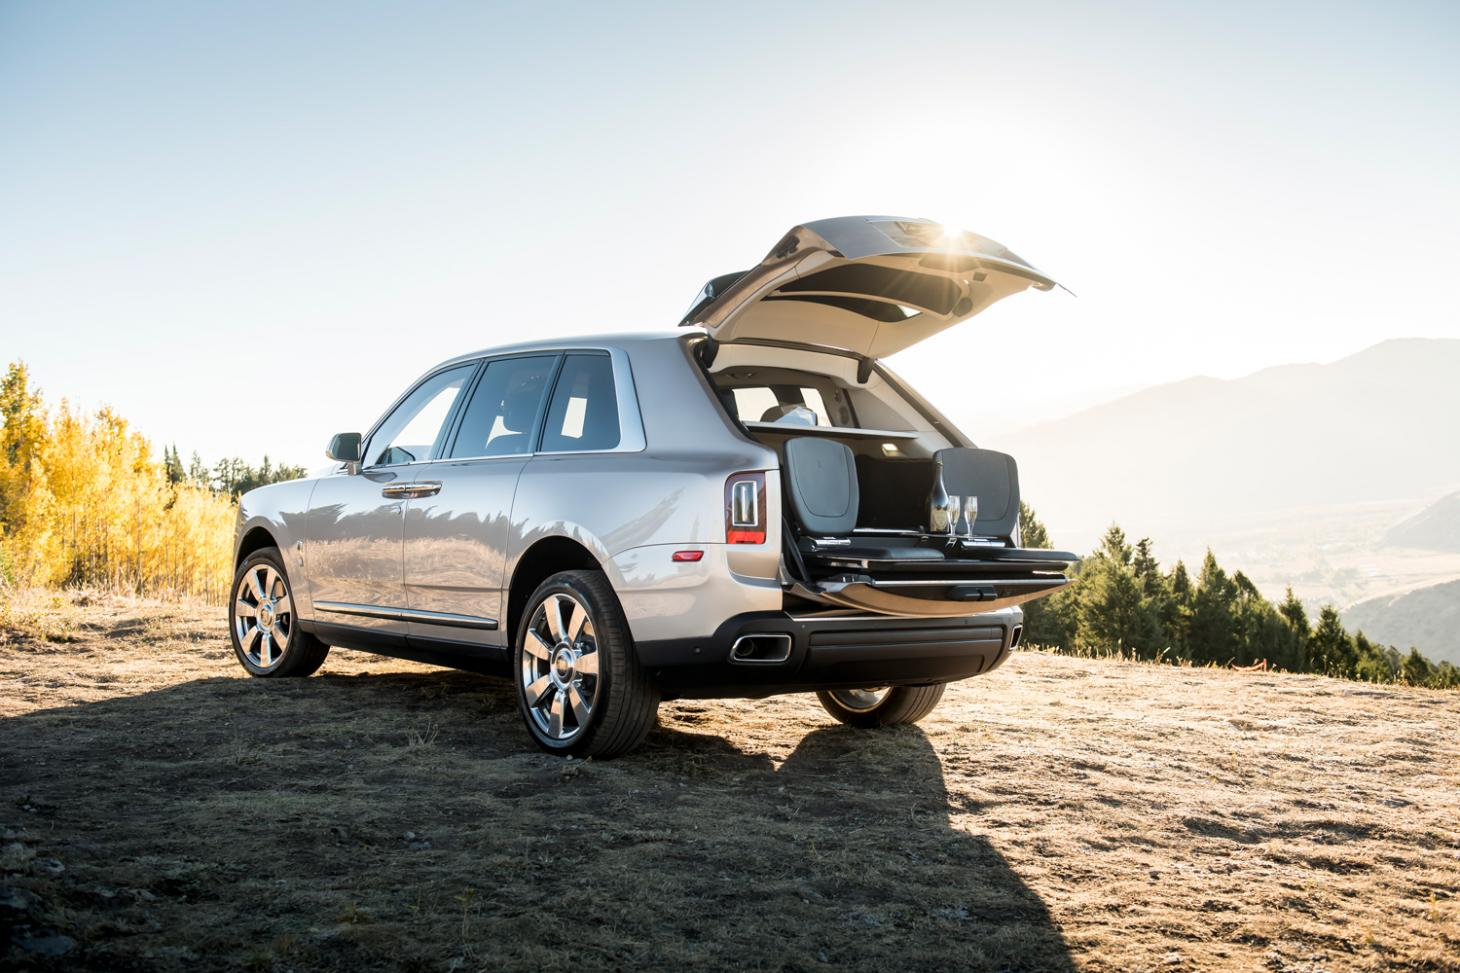 Boot of the Rolls-Royce Cullinan SUV